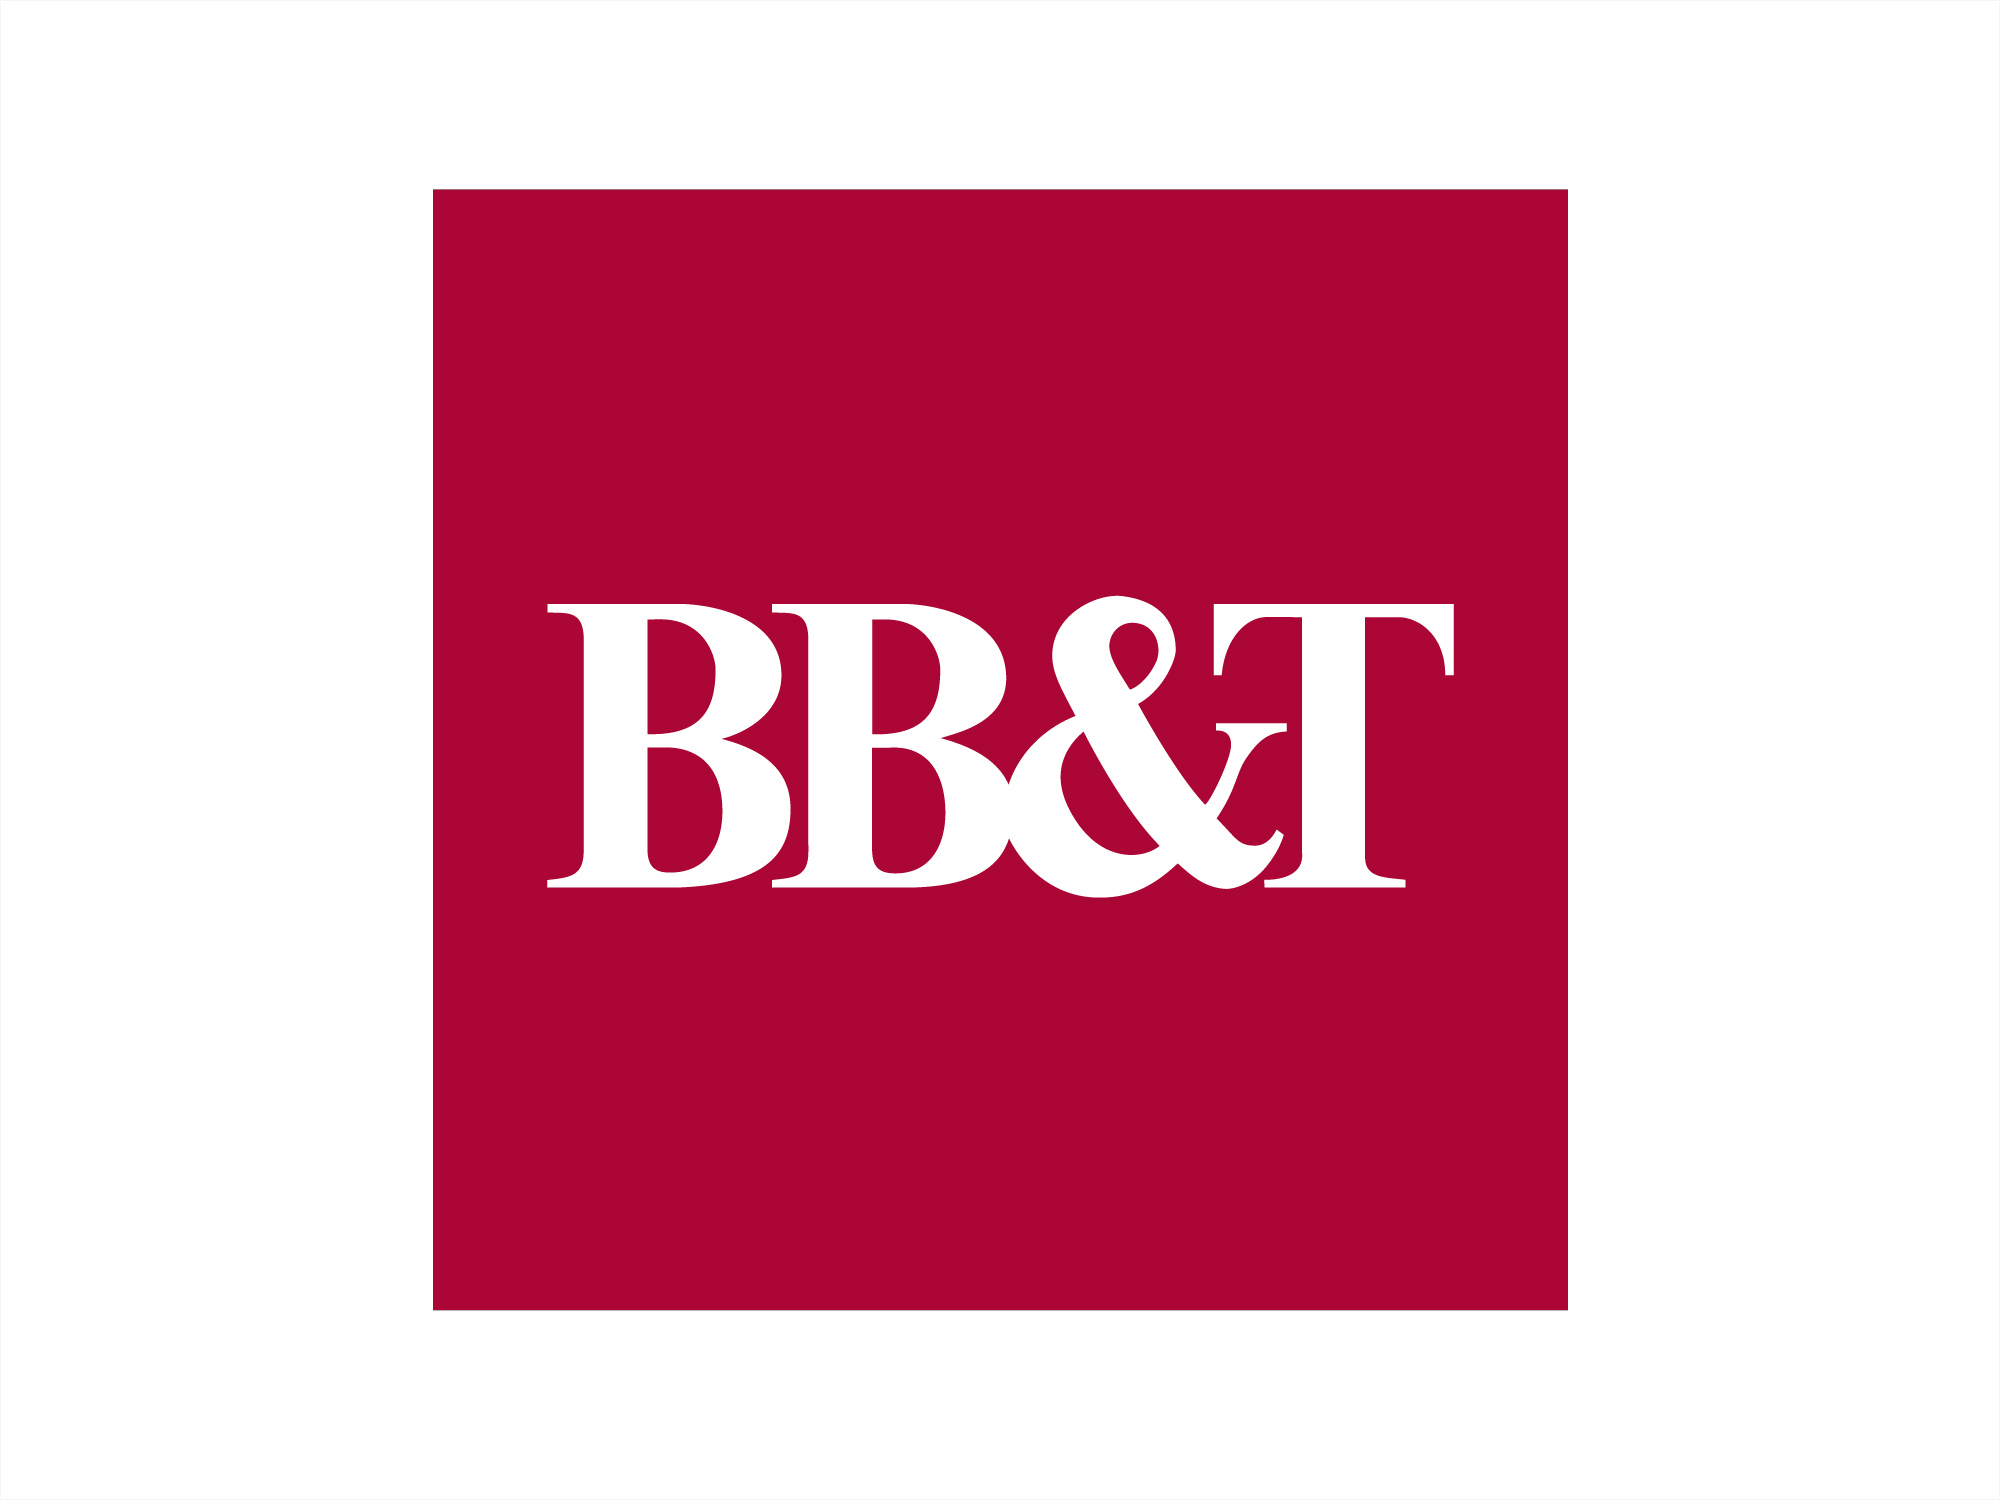 Several of BB&T's banking services unavailable due to technical issue